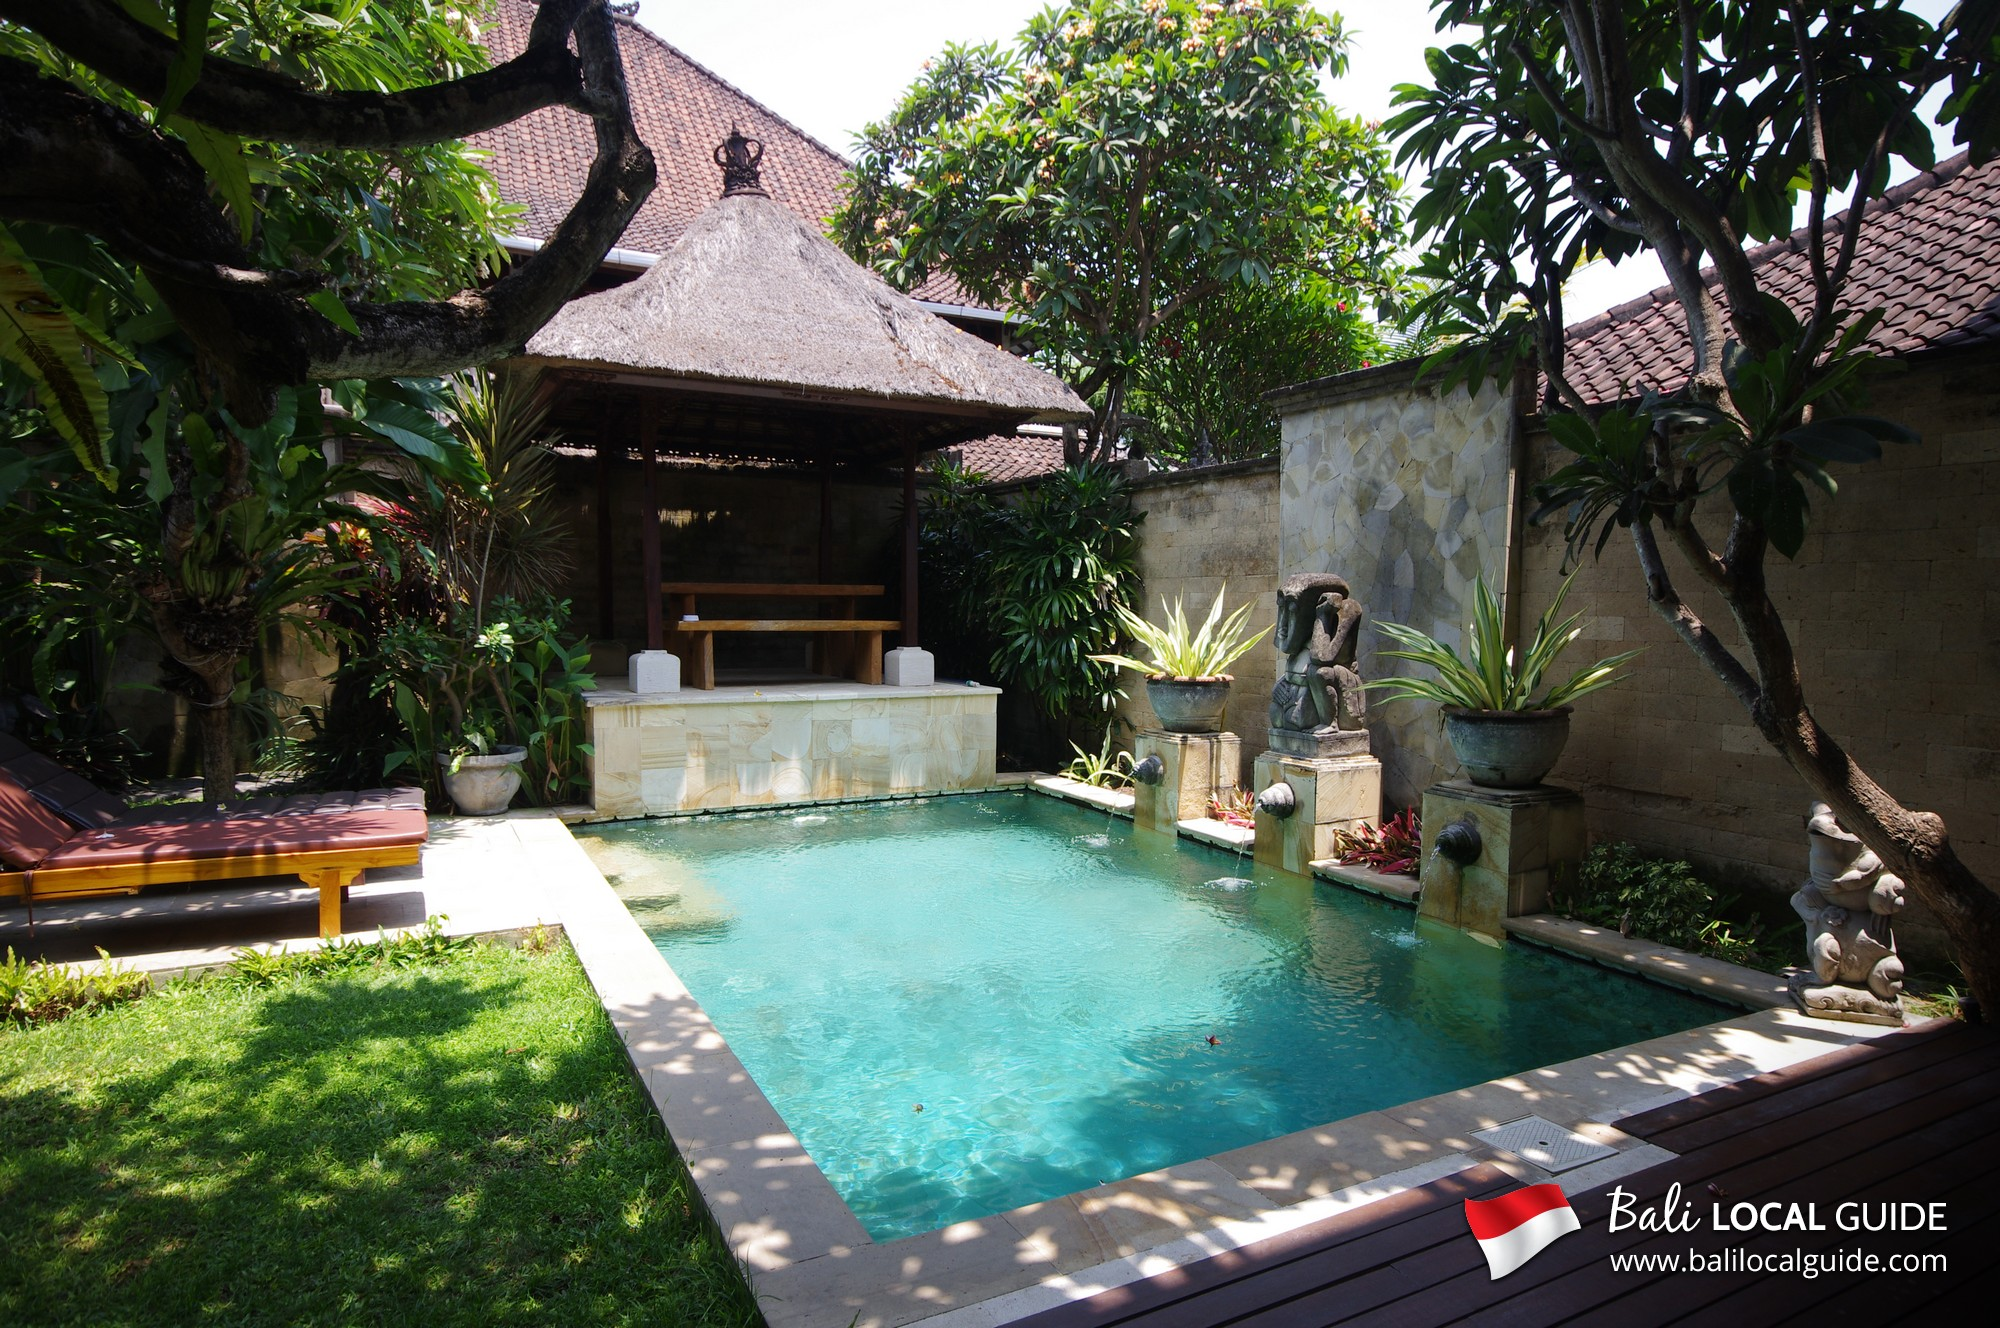 Ngetis resort avis et photos bali local guide for Piscine miroir bali